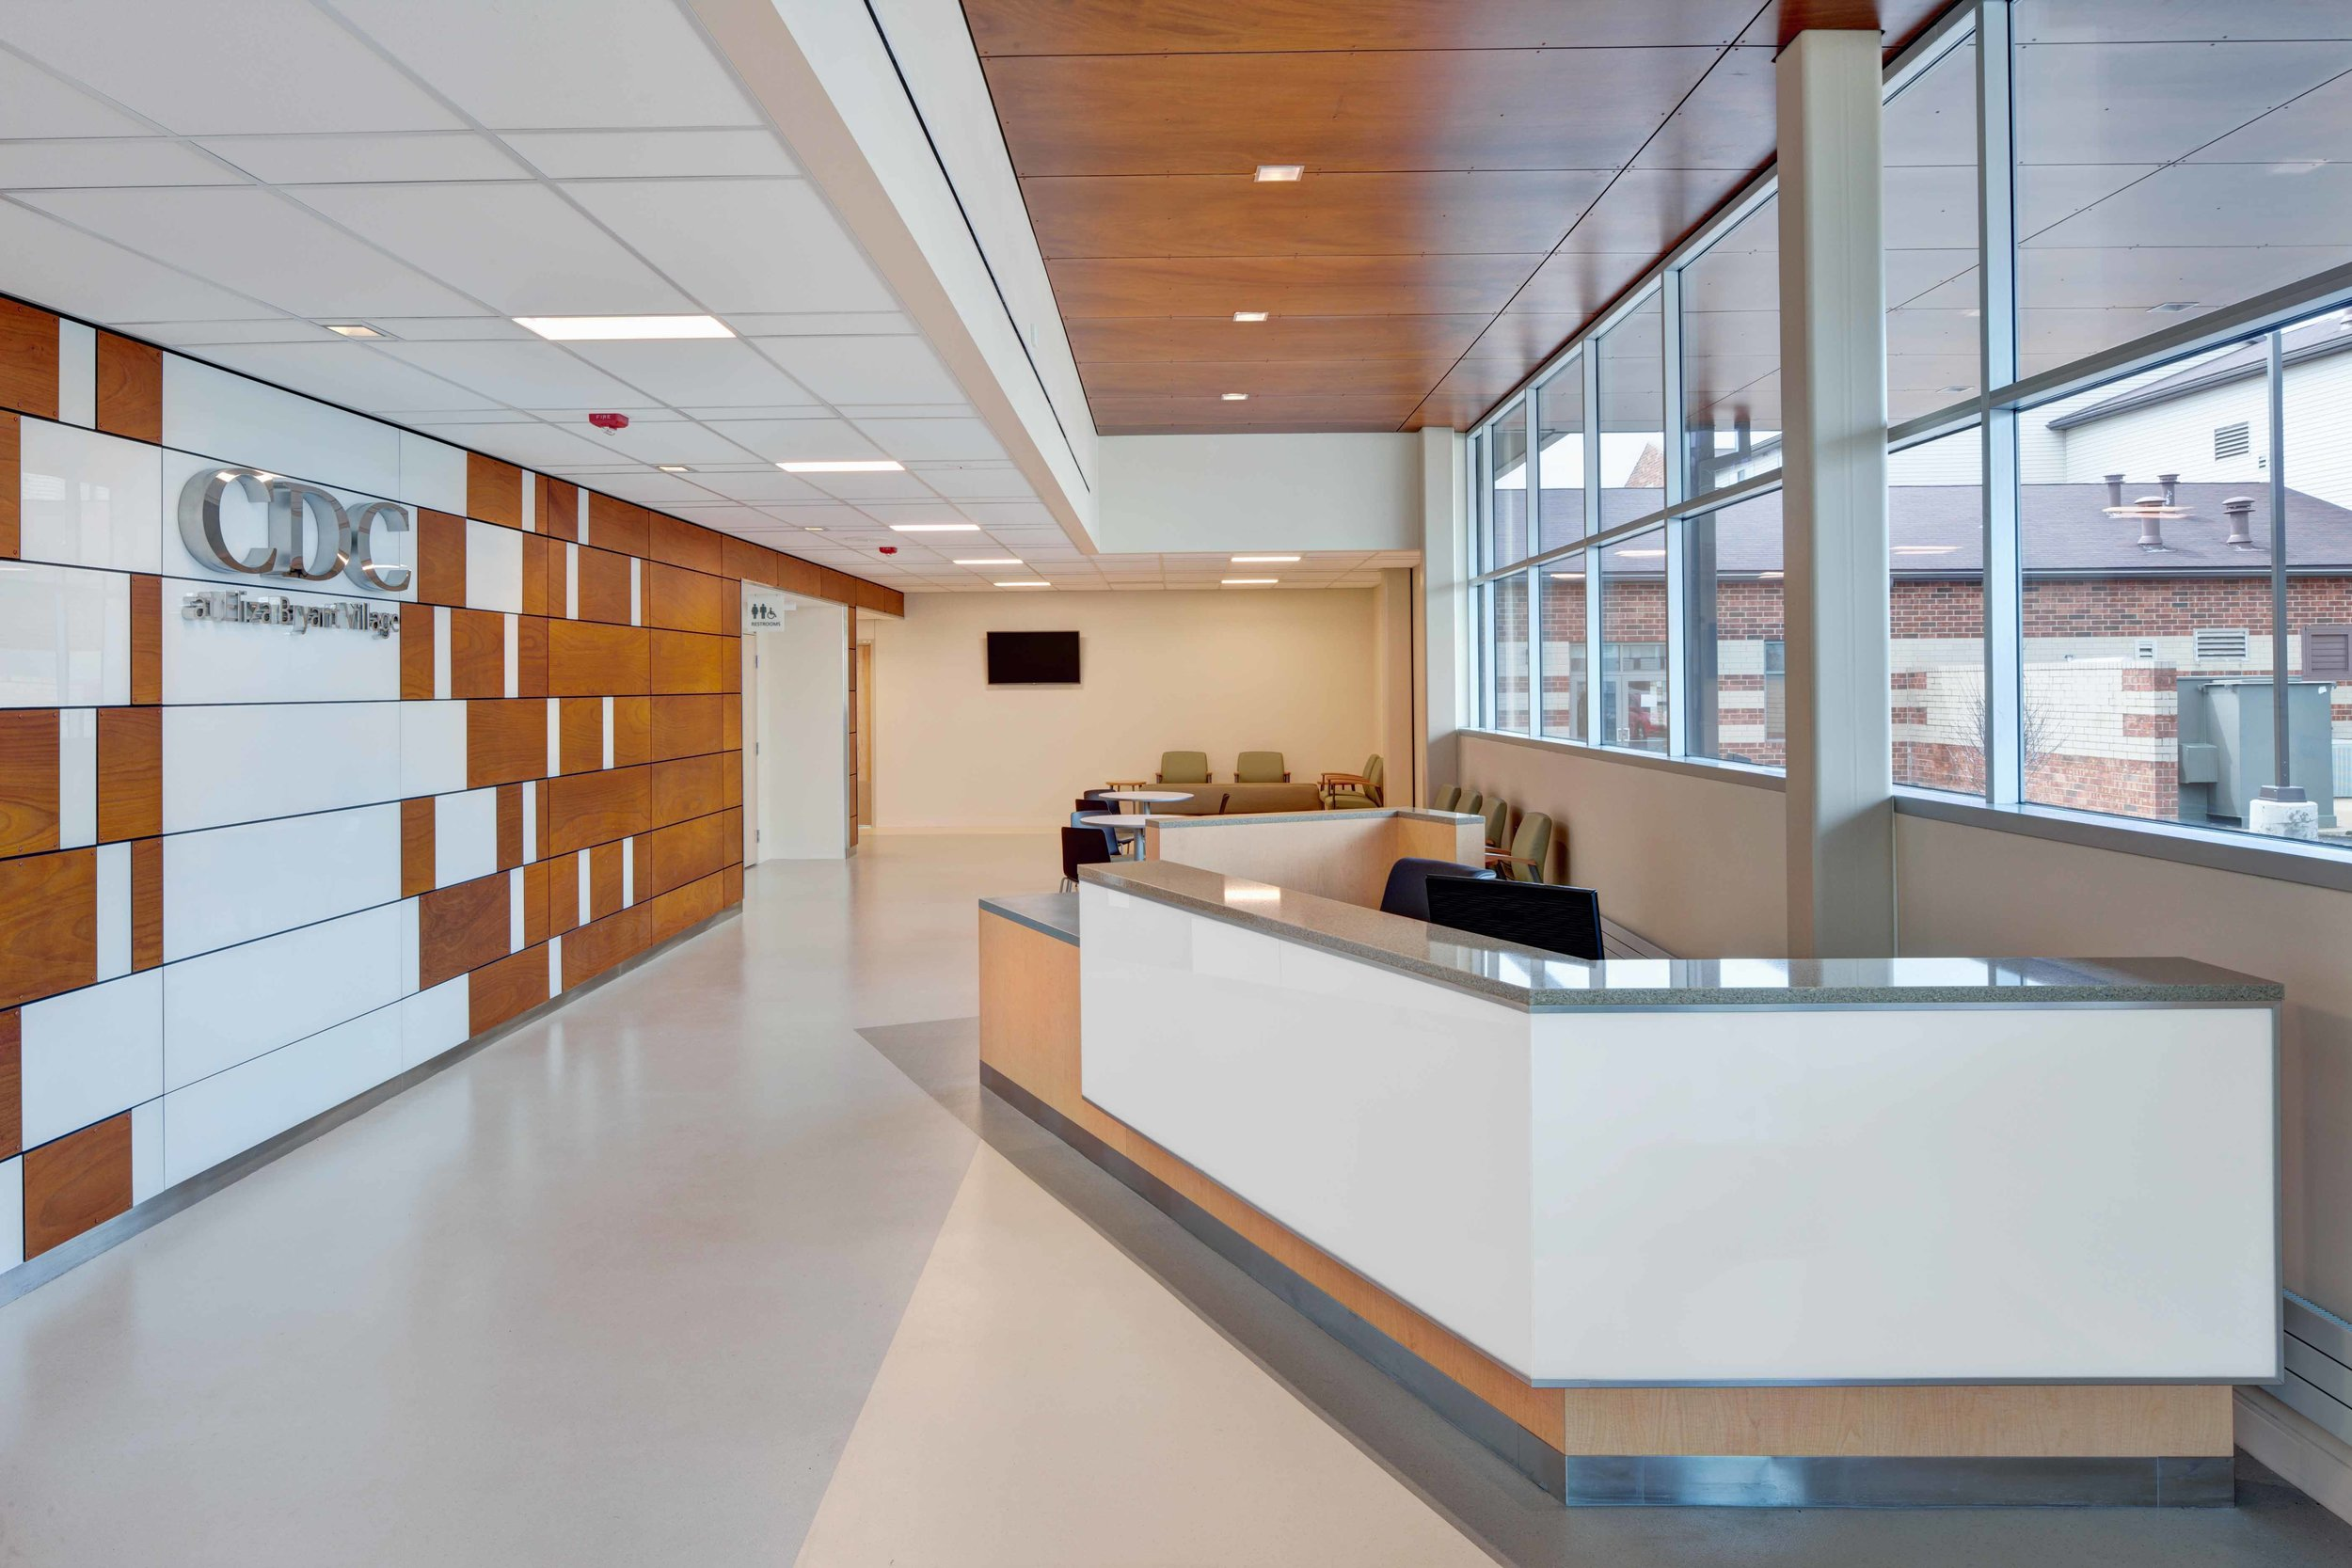 CENTERS FOR DIALYSIS CARE, ELIZA BRYANT